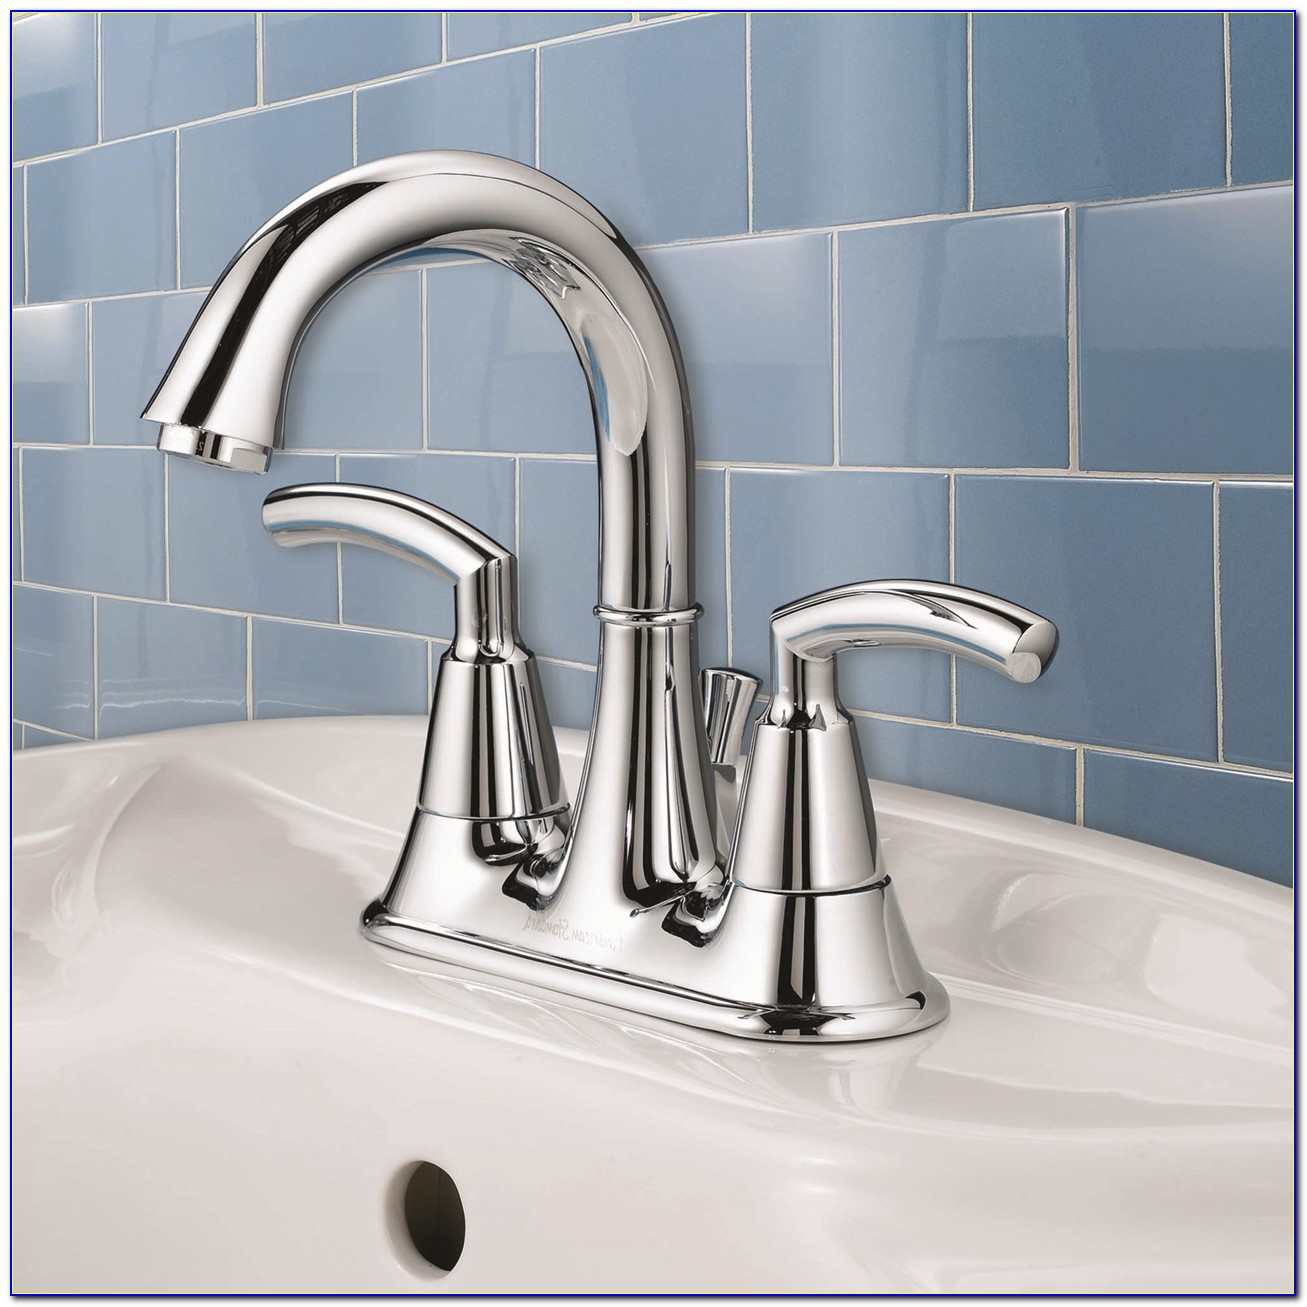 4 Inch Minispread Bathroom Faucets